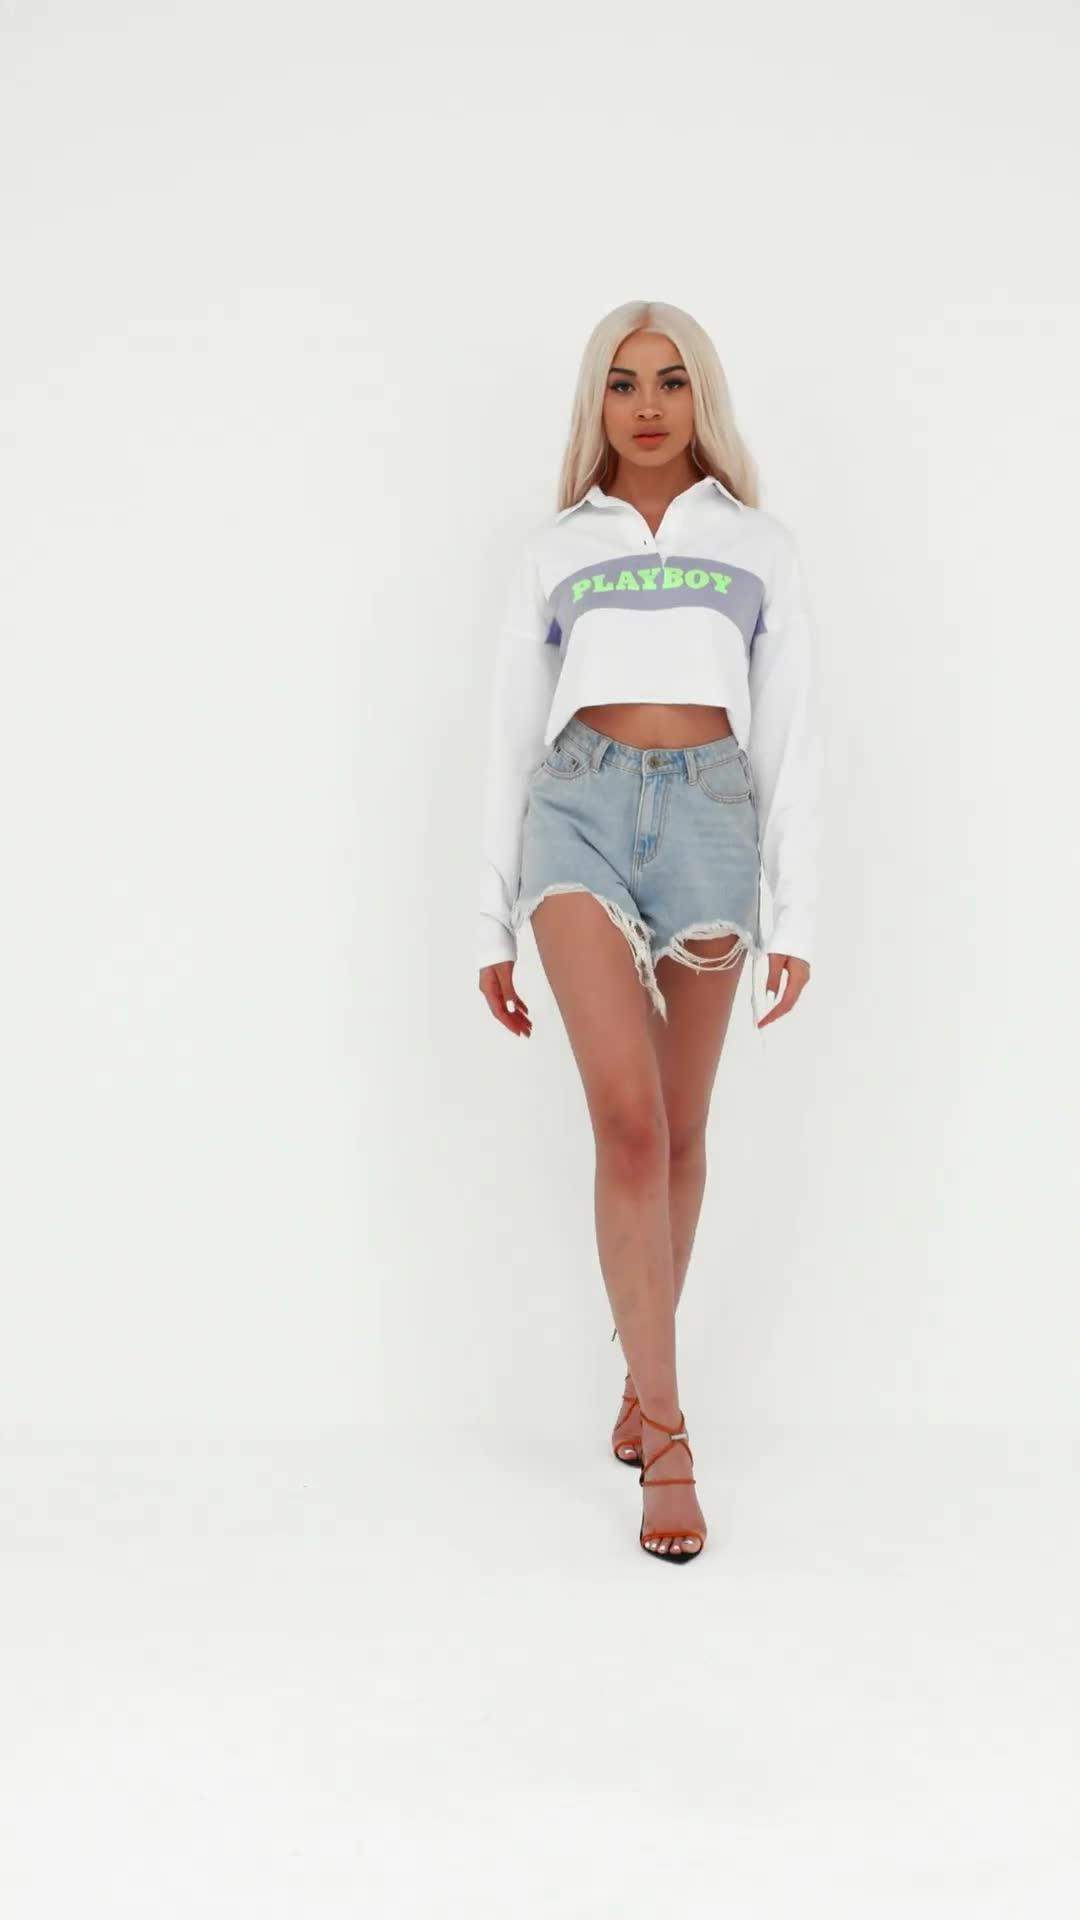 d2dd0147f8057 Missguided - Playboy X White Cropped Graphic Rugby Shirt - Lyst. View  fullscreen